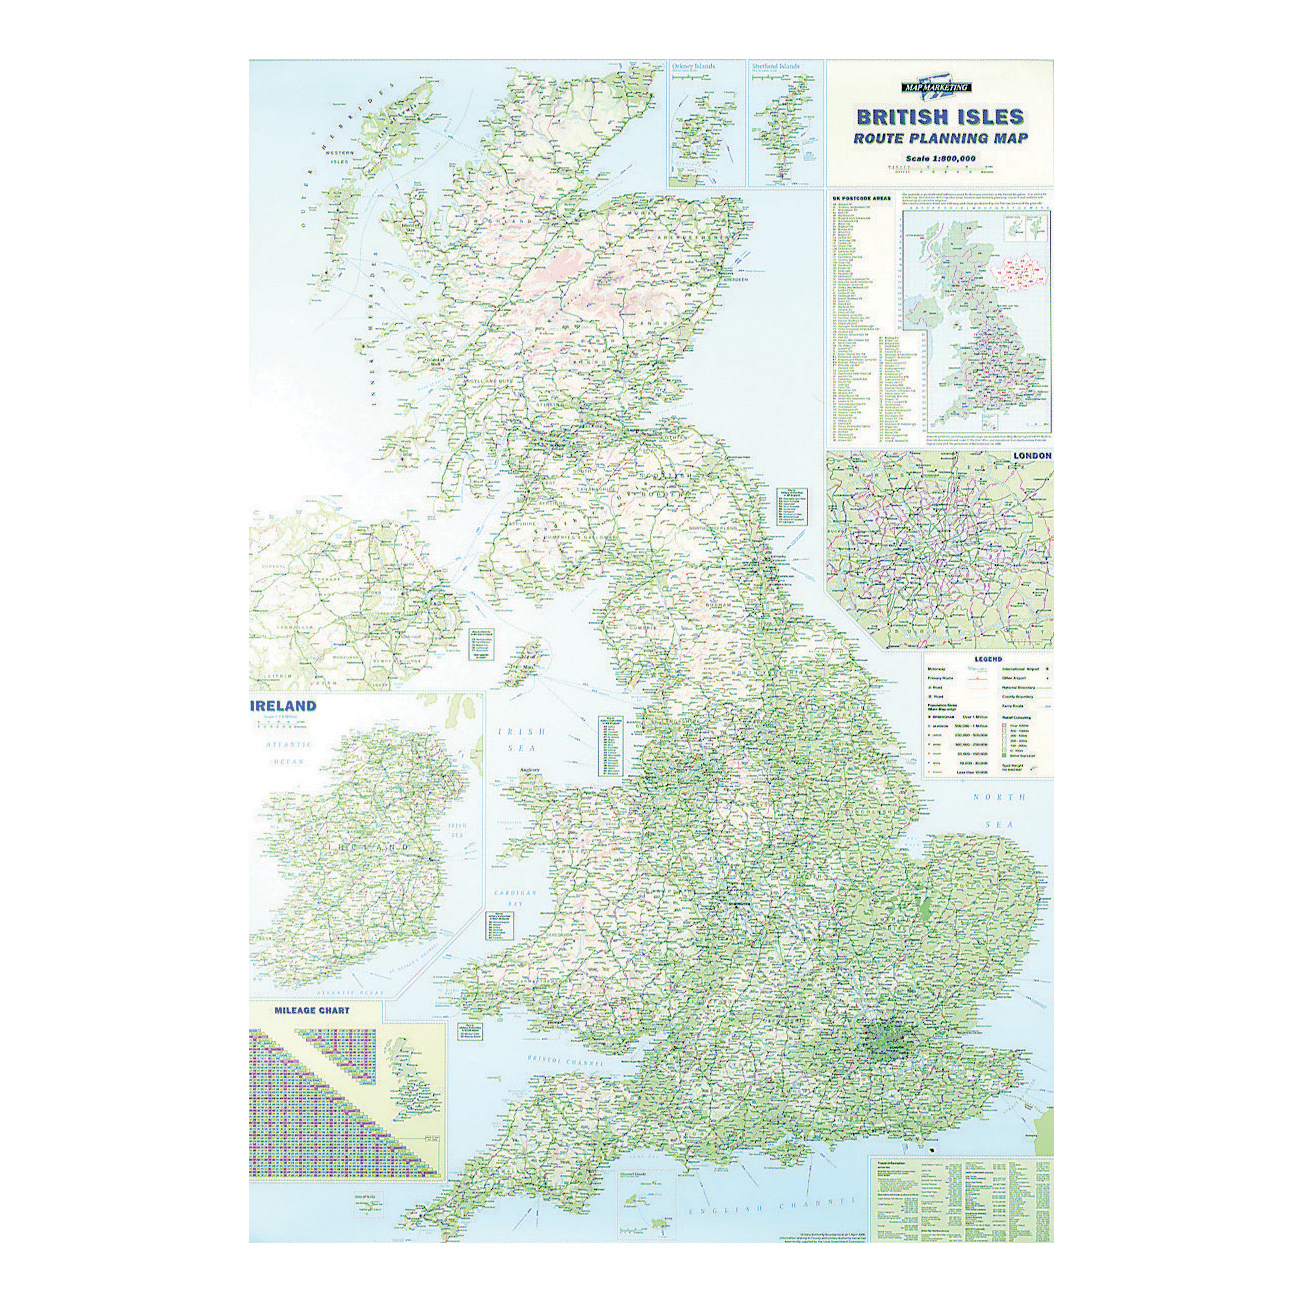 Atlases & Maps Map Marketing British Isles Motoring Map Unframed 12.5 Miles to 1 inch Scale W830xH1200mm Ref BIM